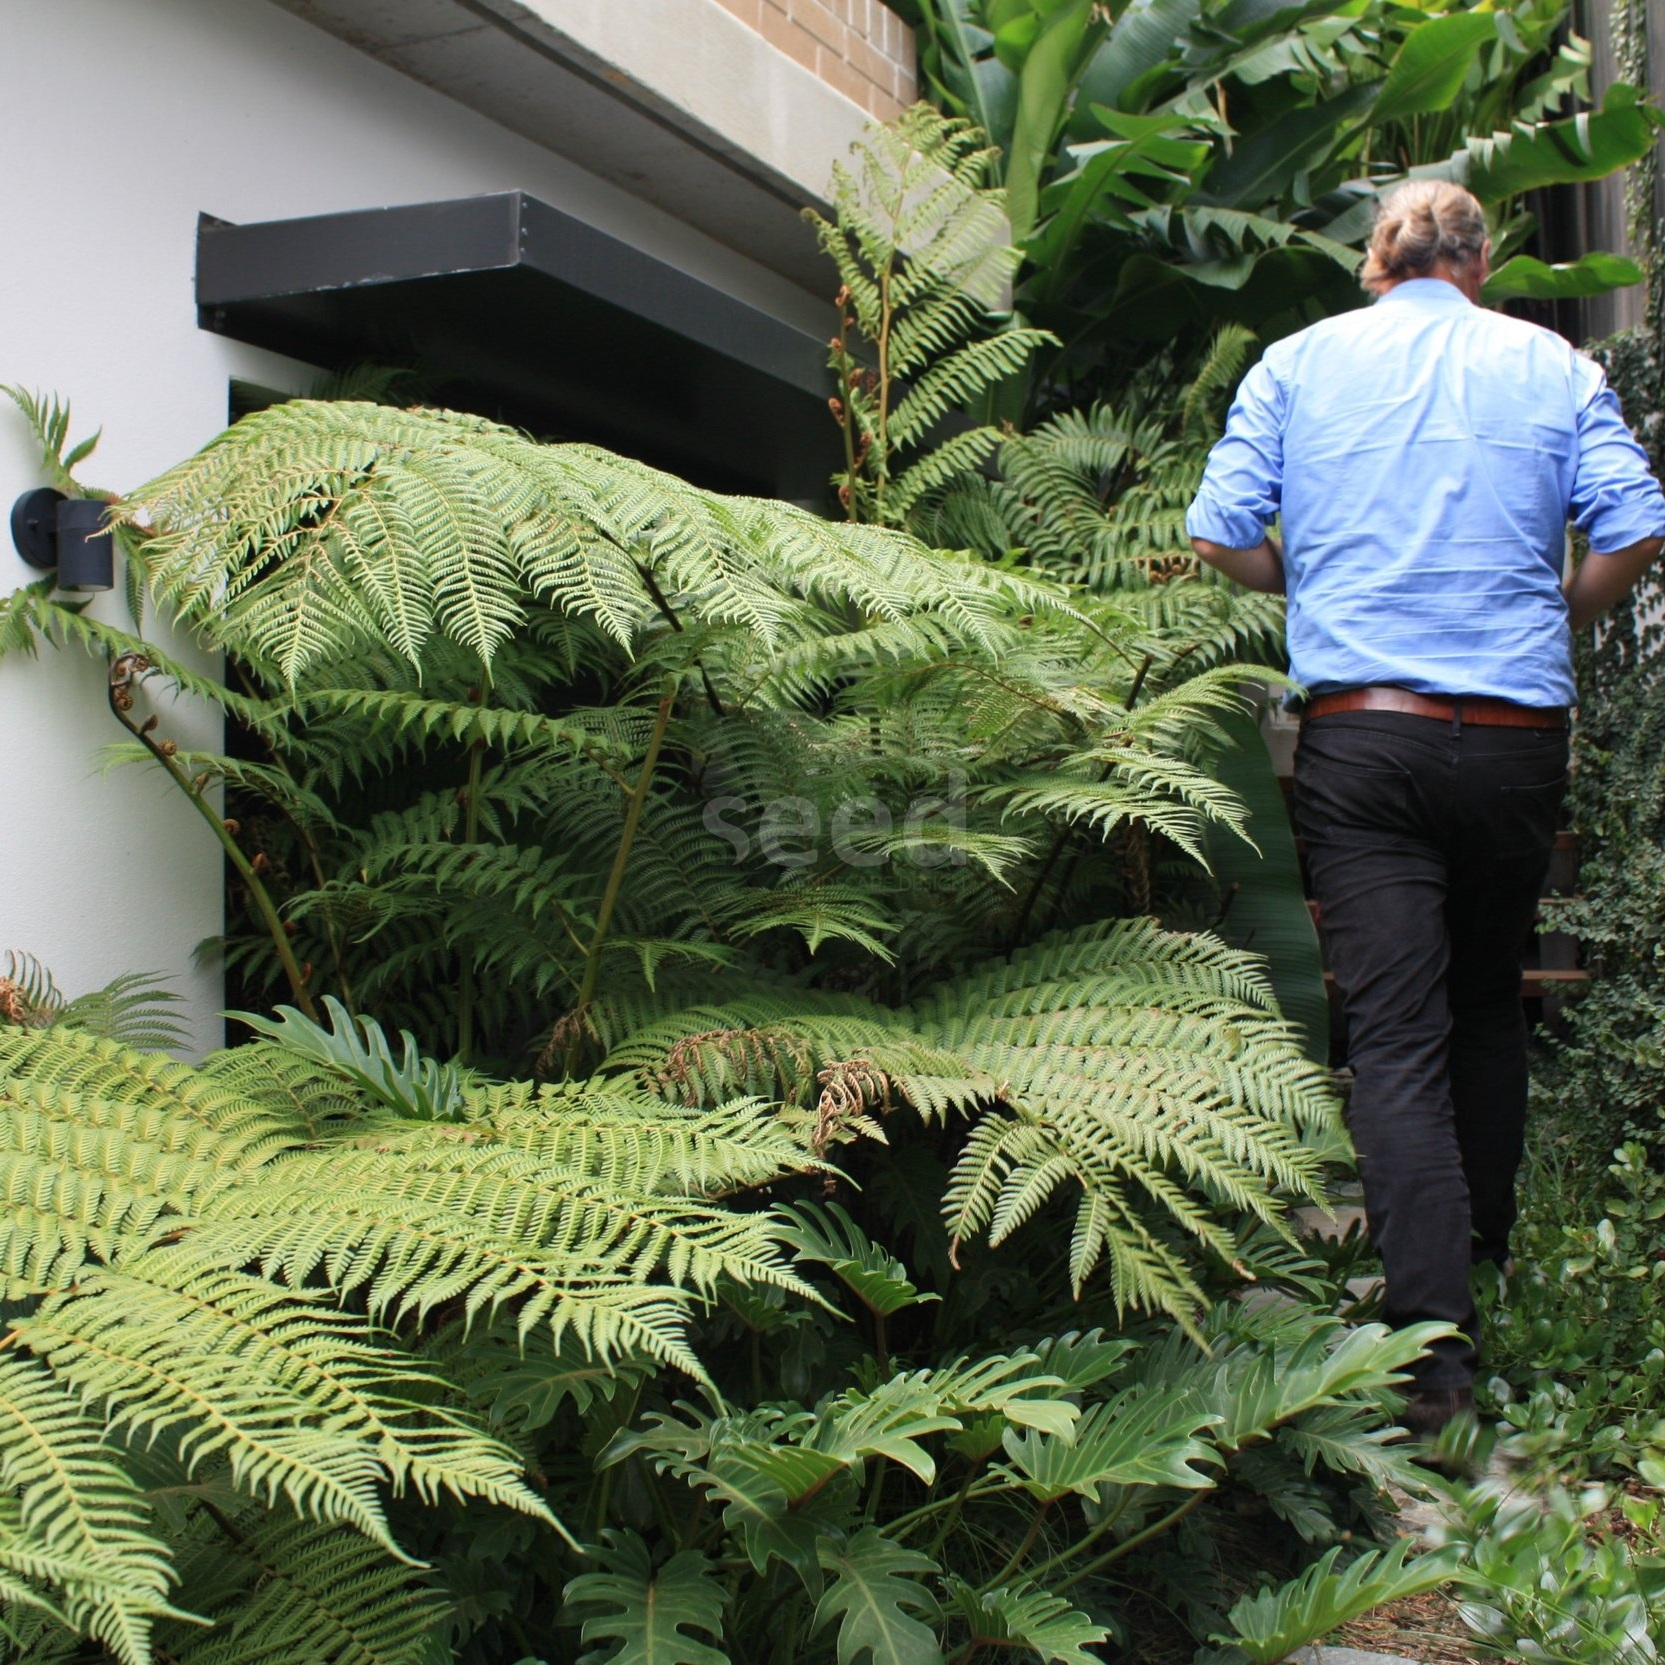 Let's go! It is so lush and inviting as we meander up, down and through a variety of spaces.